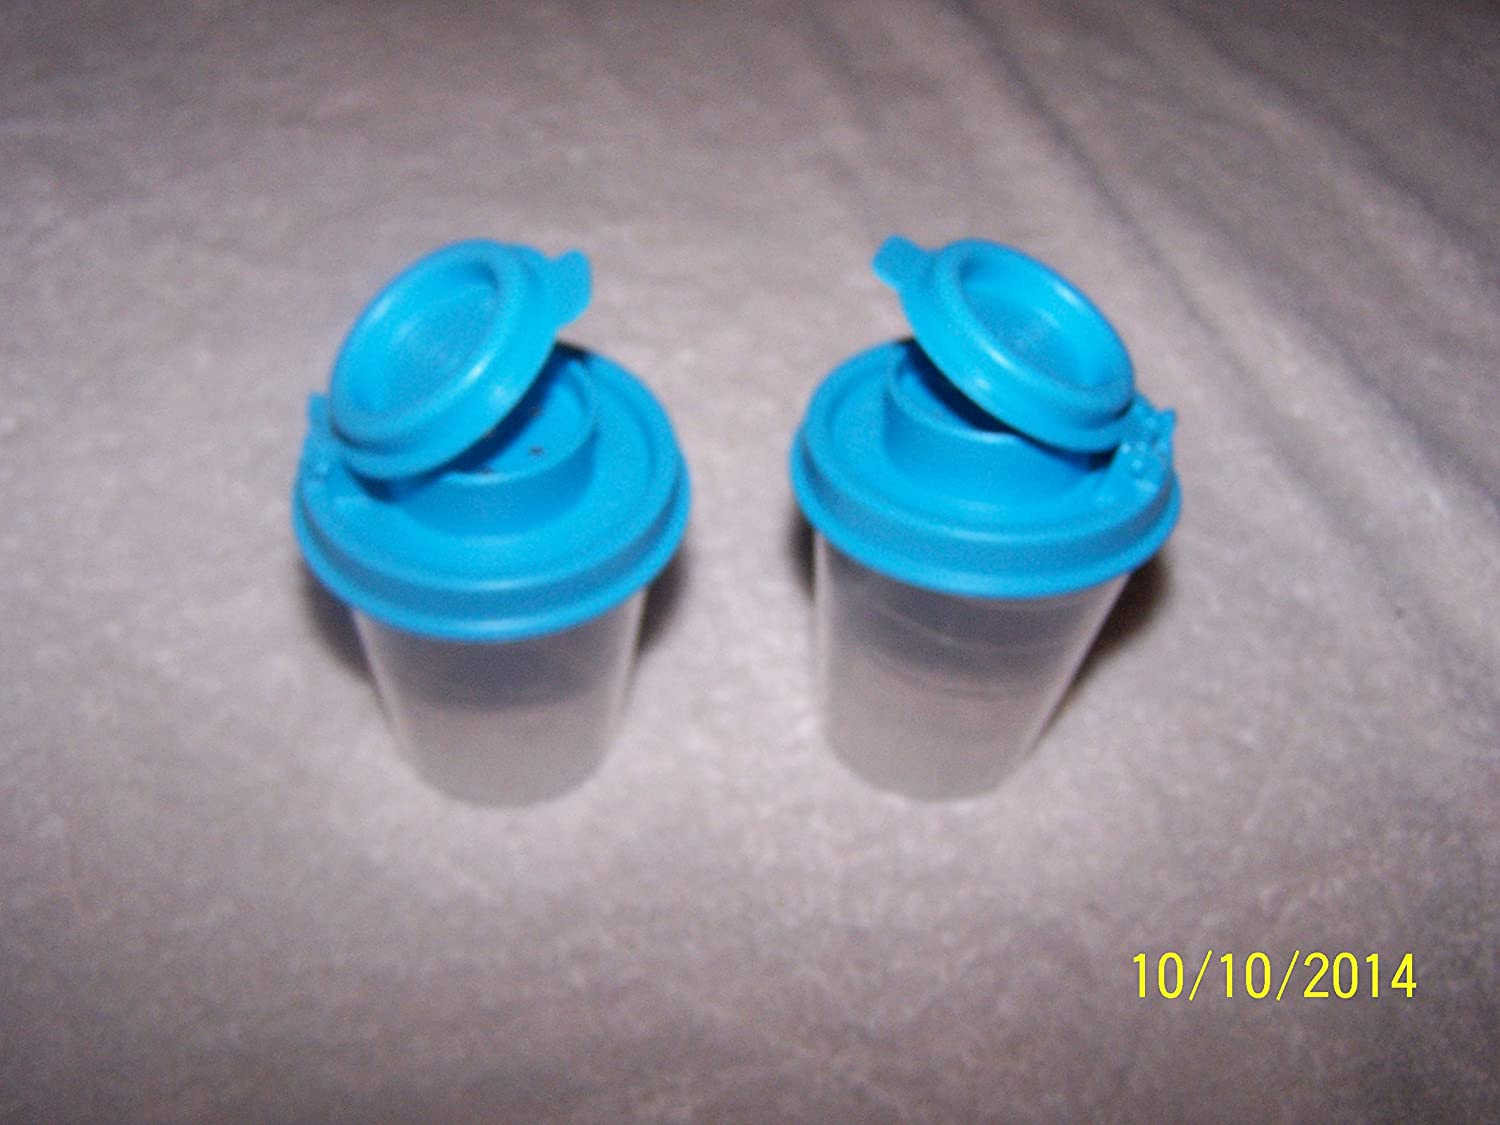 Tupperware Mini Salt /& Pepper Shakers 2oz Clear With Teal Blue Tops